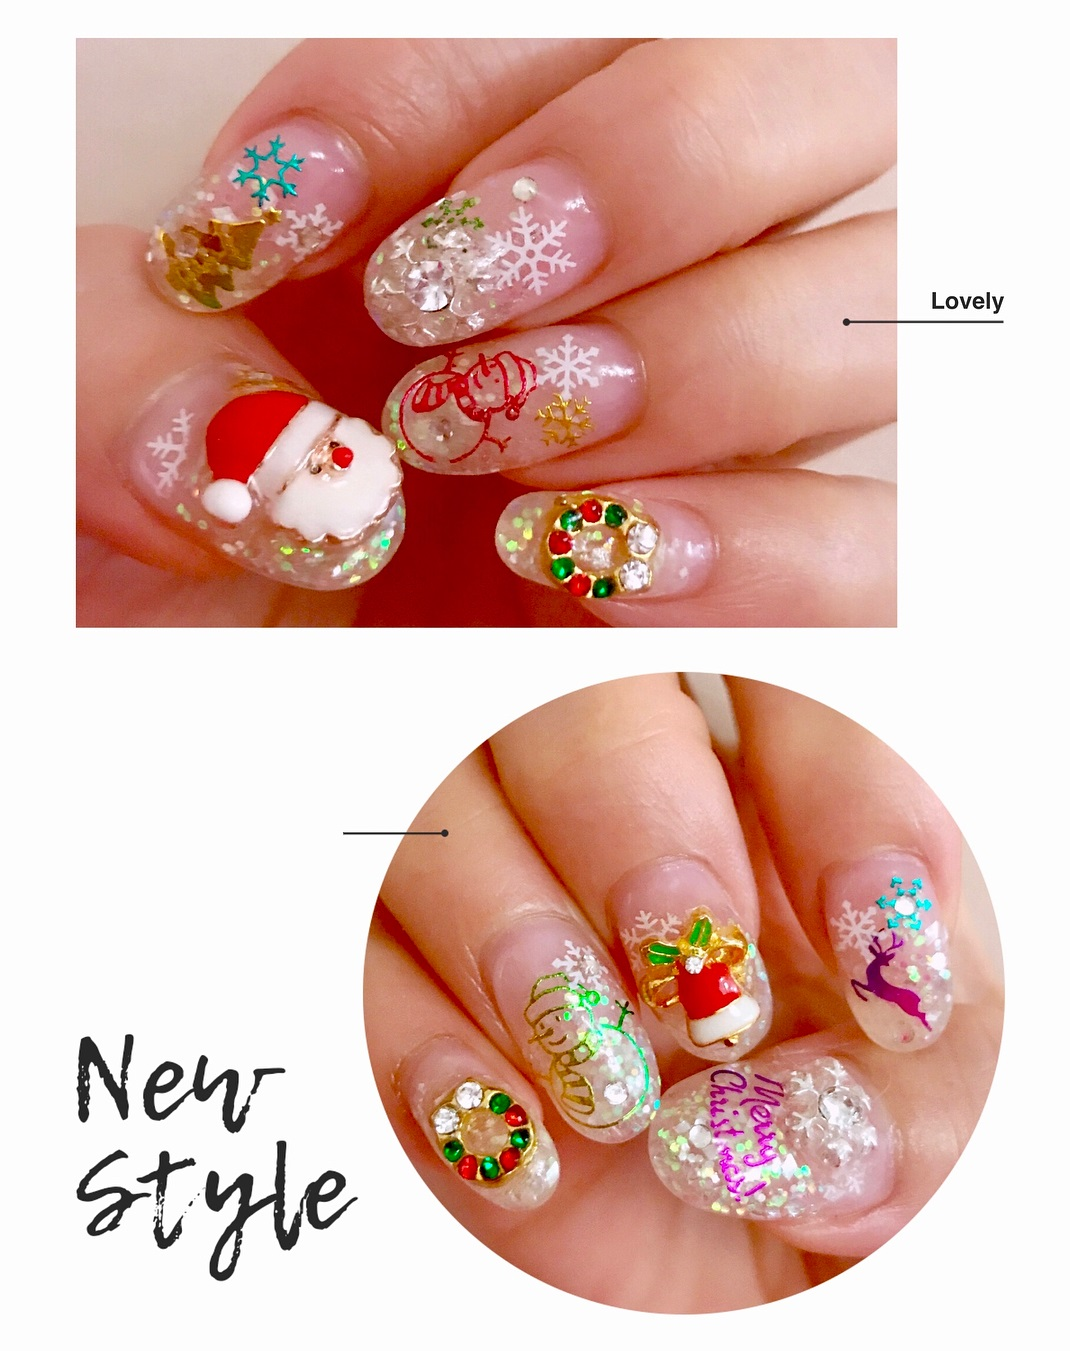 Fabulous Festive Nails With Santa, Reindeer And Snowman